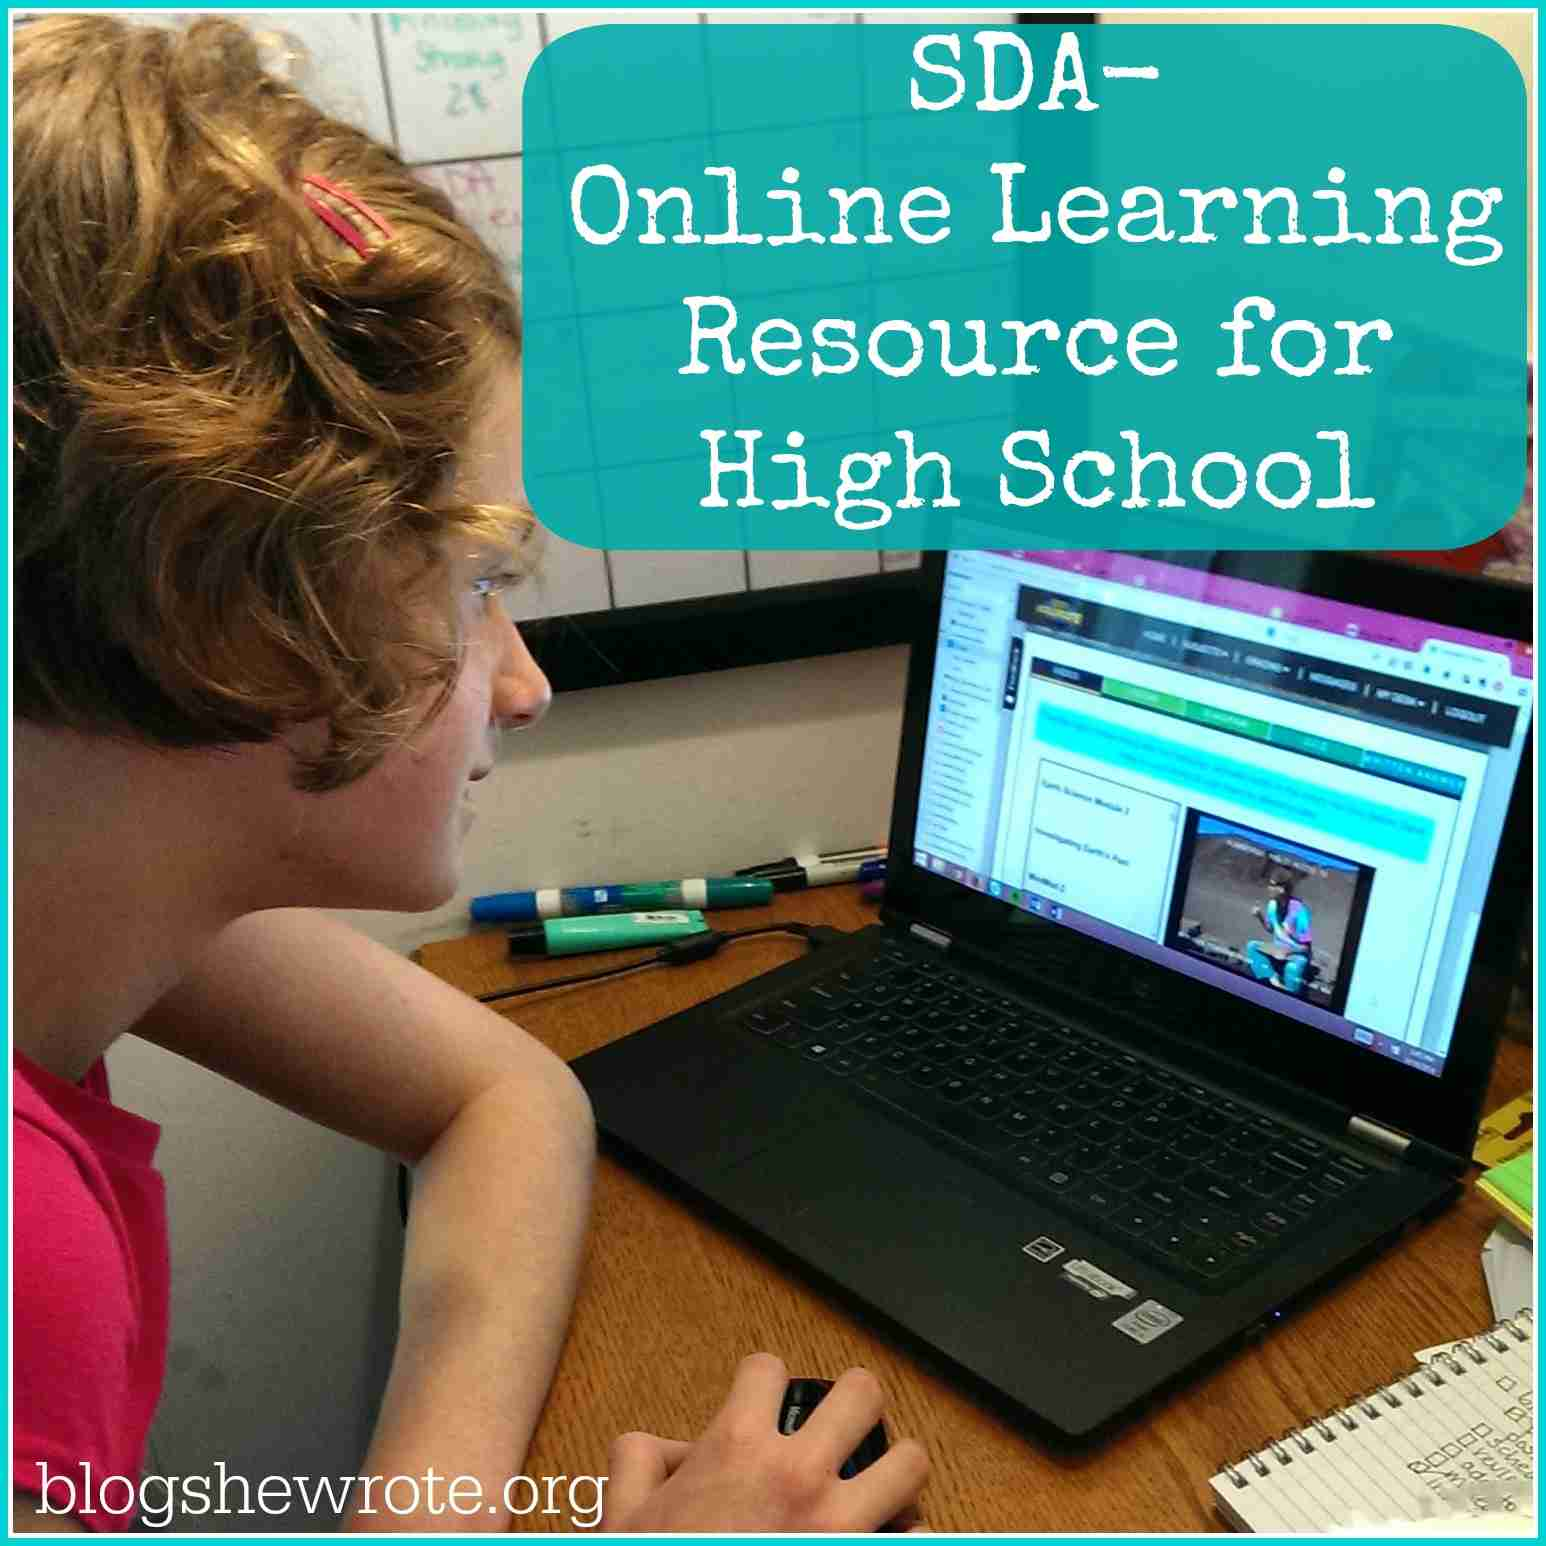 Blog, She Wrote: Standard Deviants Accelerate Online Learning Resource for High School